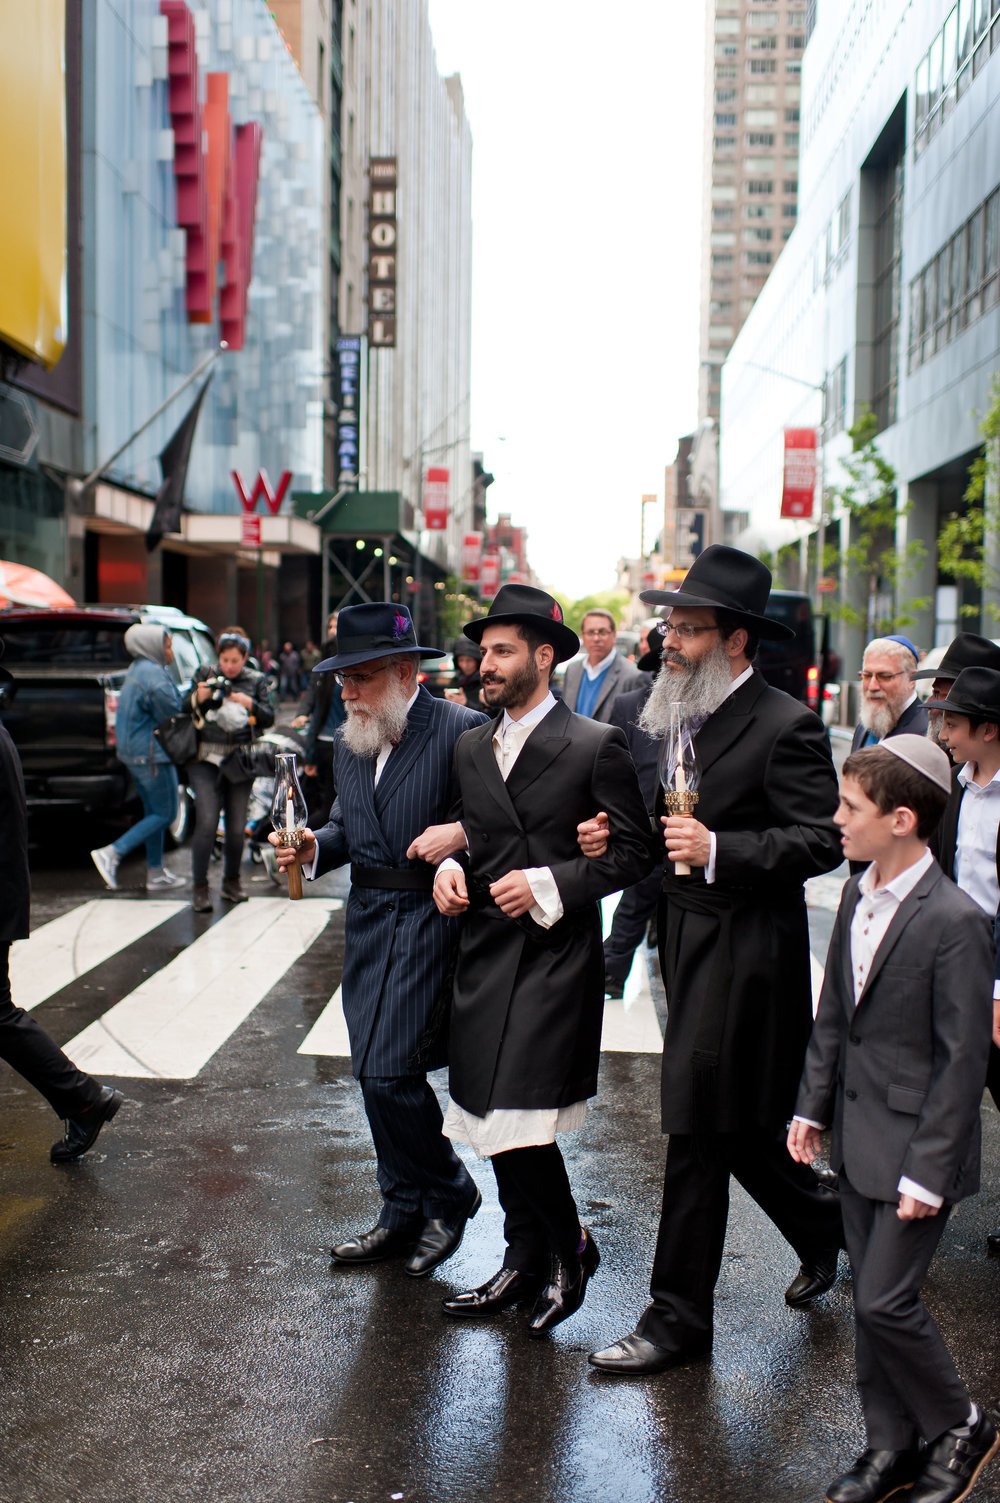 Historic Chabad Orthodox Jewish Wedding in Times Square Manhattan New York NYC Photo by Chaim Schvarcz, groom, father of the groom, father of the bride, walking down the isle